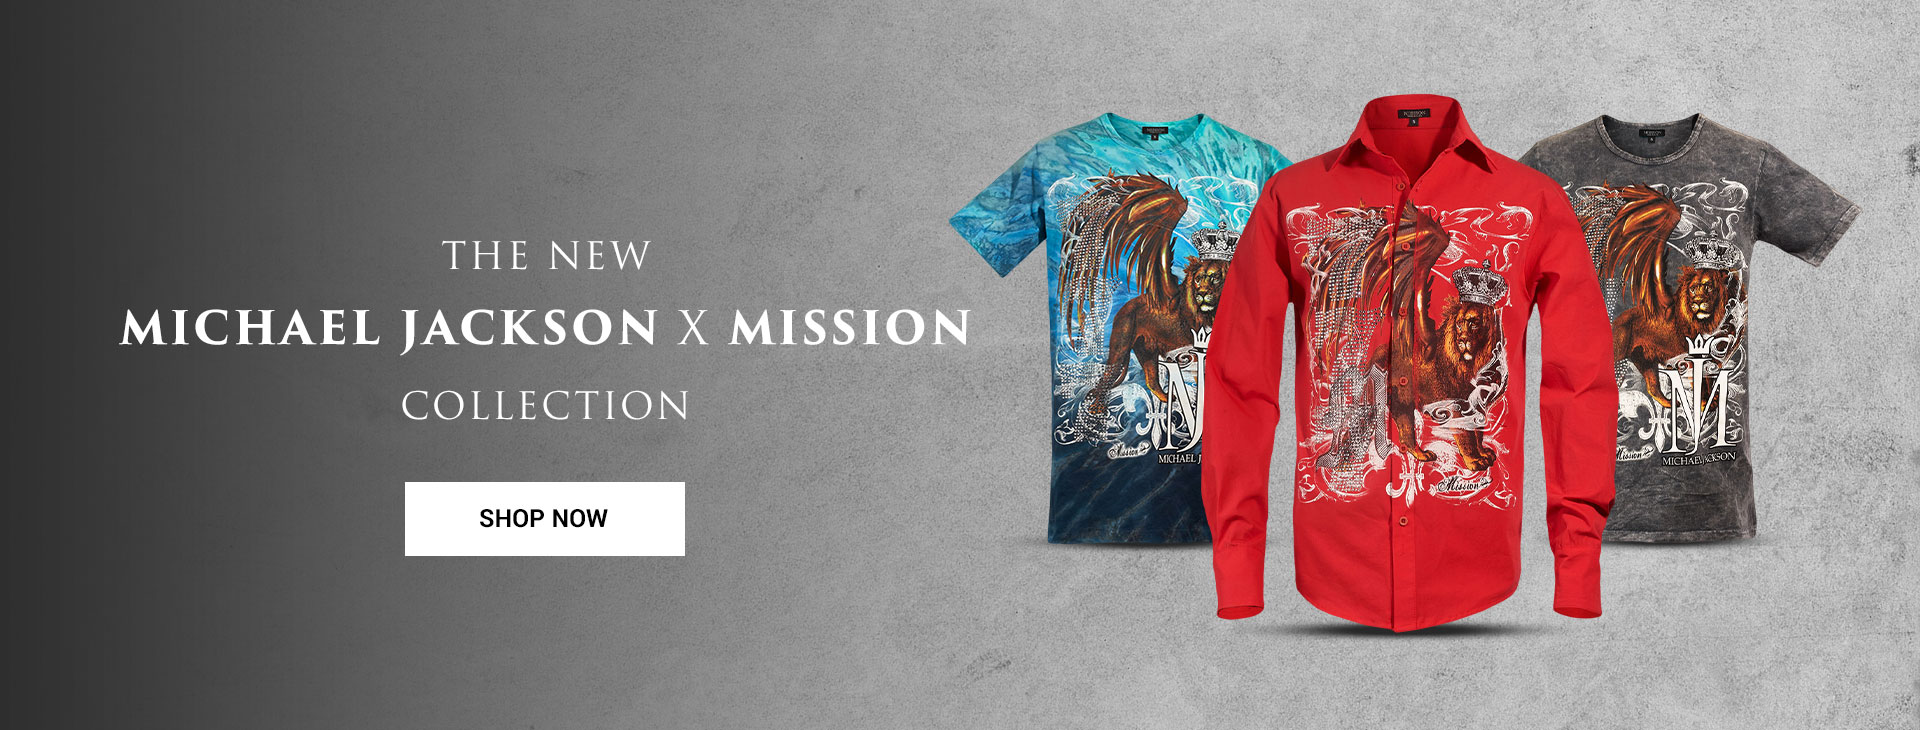 Shop The Michael Jackson x Mission Collection